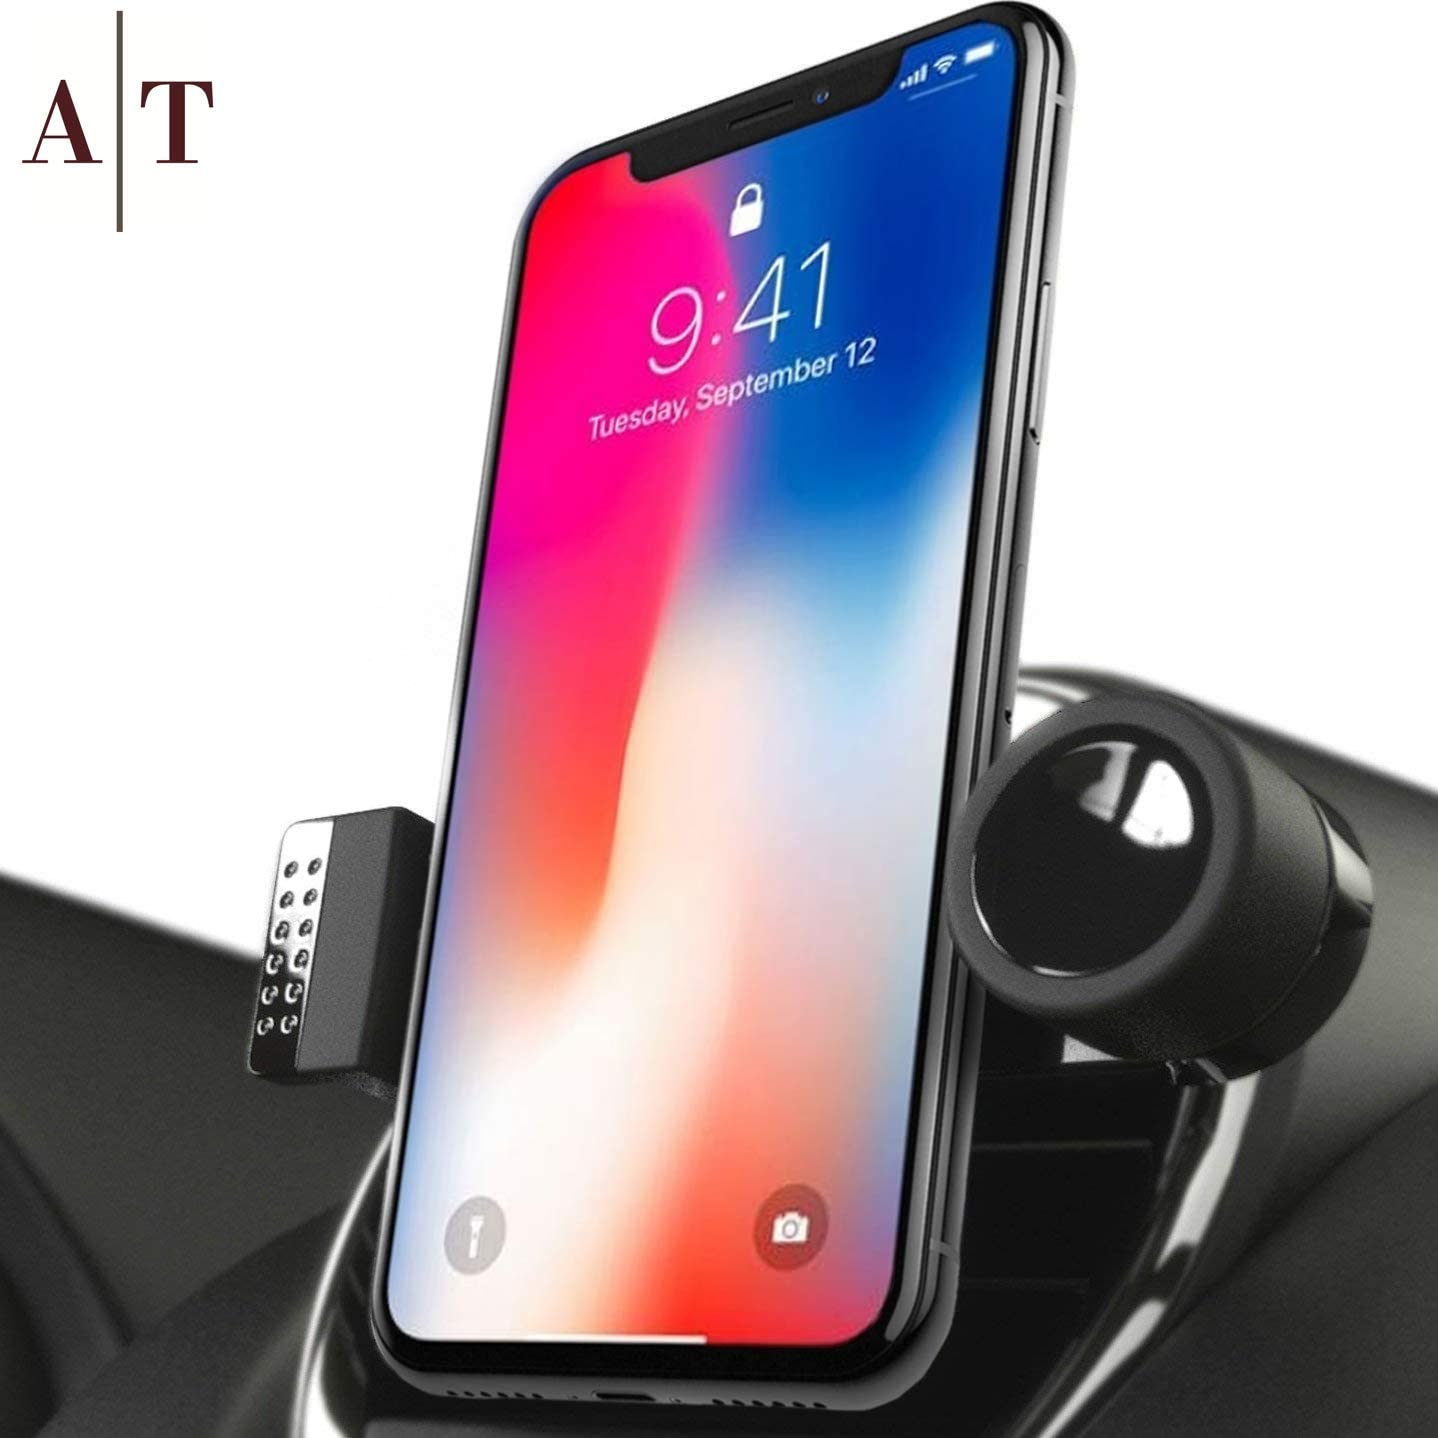 Cell Phone Holder for Car Air Vents | 360° Rotation Car Phone Mount, Fits All Smartphones - iPhone 11 Pro, 11, X, XR, XS Max, 8, 7, 6, 5, | 6/7/8 Plus | S8, S9, Note 9 | Luxury Vent Phone Holder